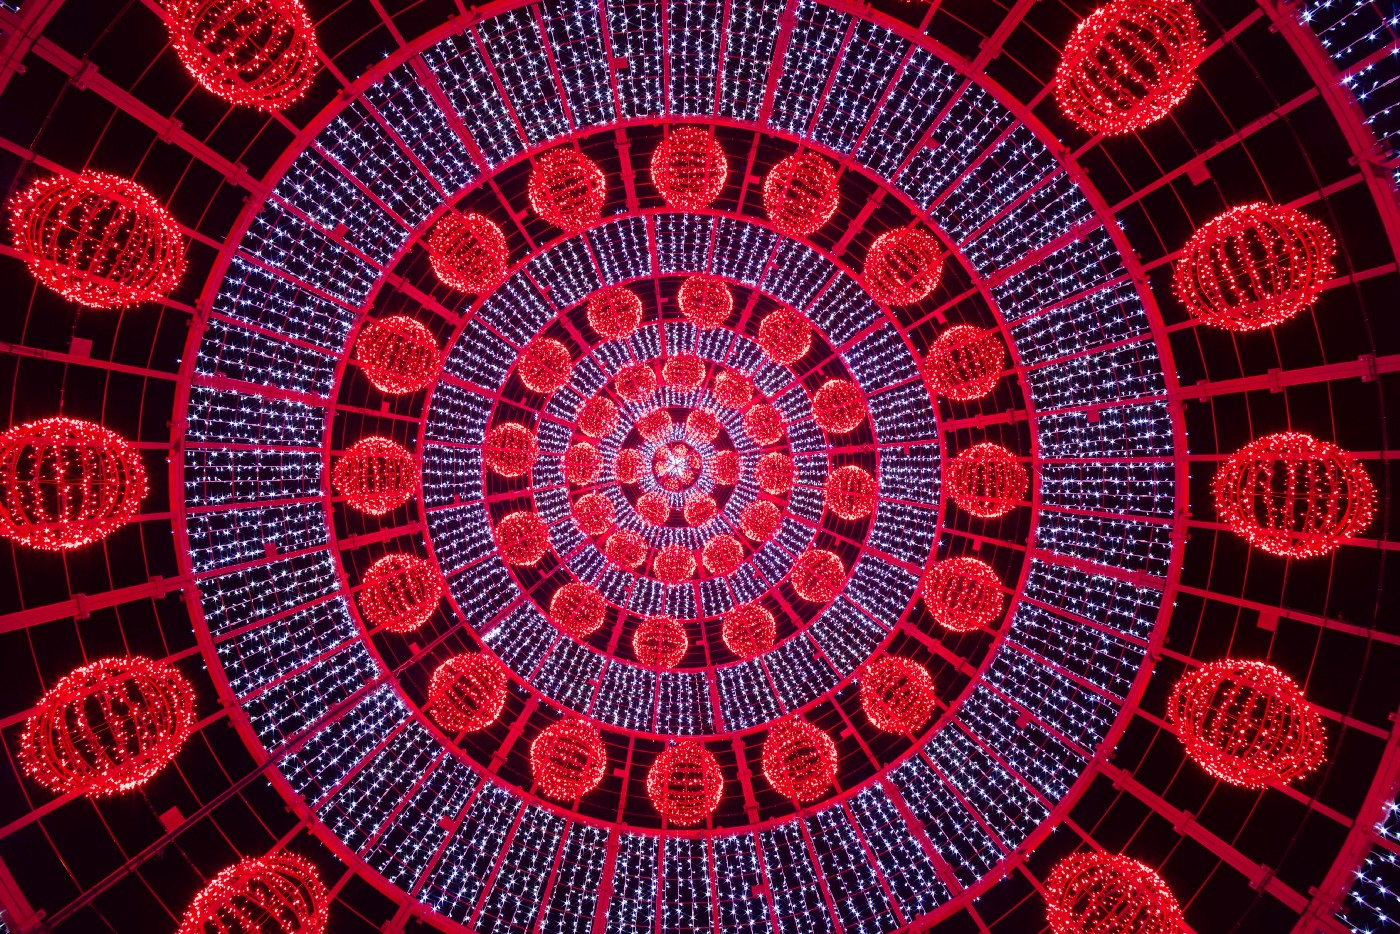 Christmas lights in Portugal showing concentric circles of red and blue light